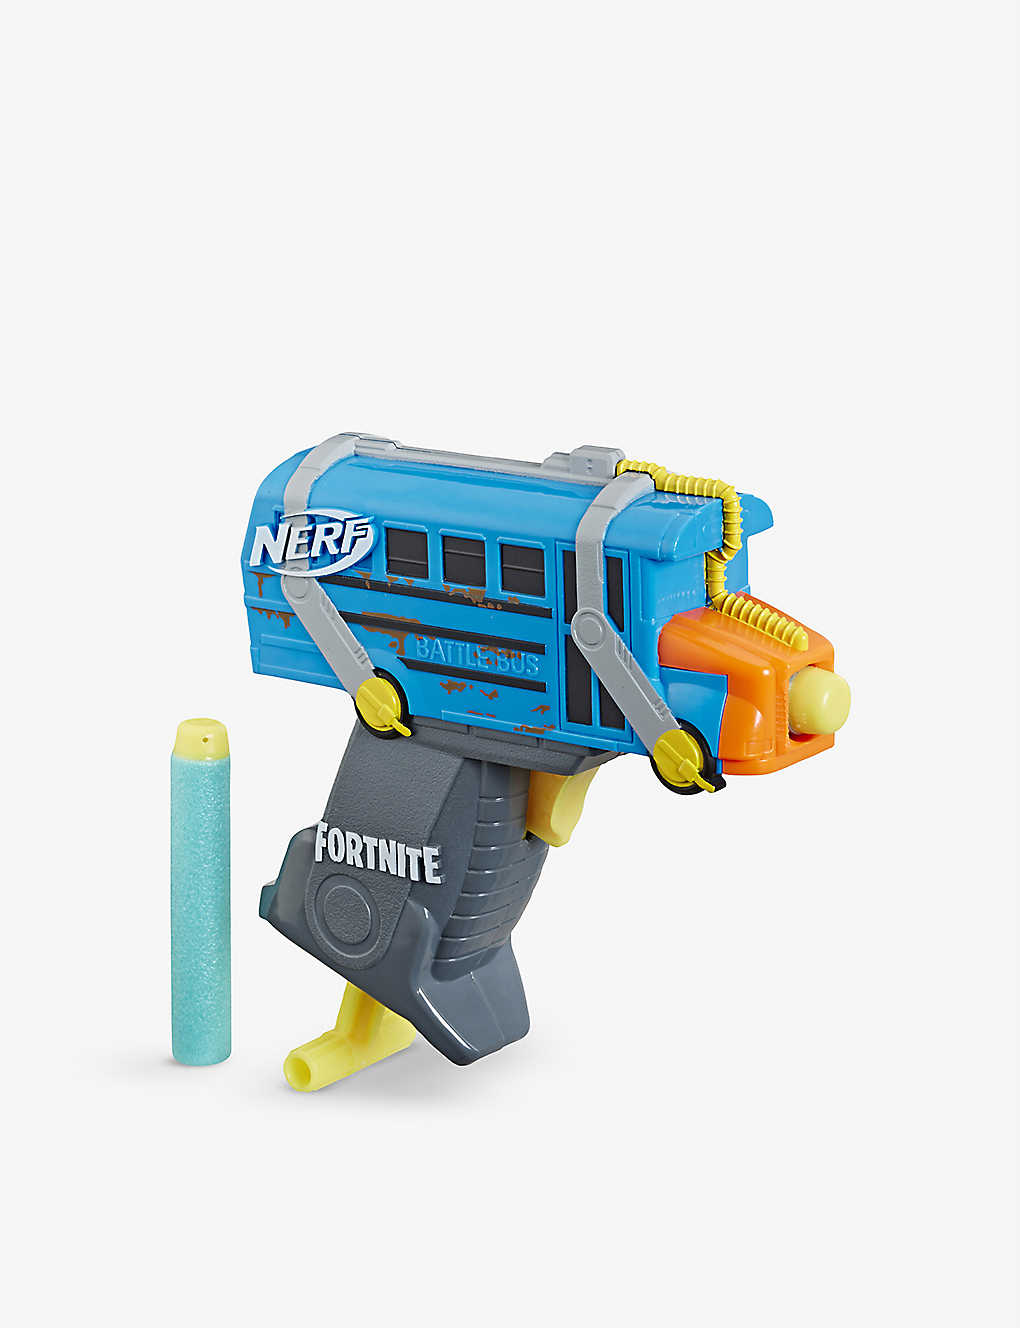 NERF: Fortnite Battle Microshots toy